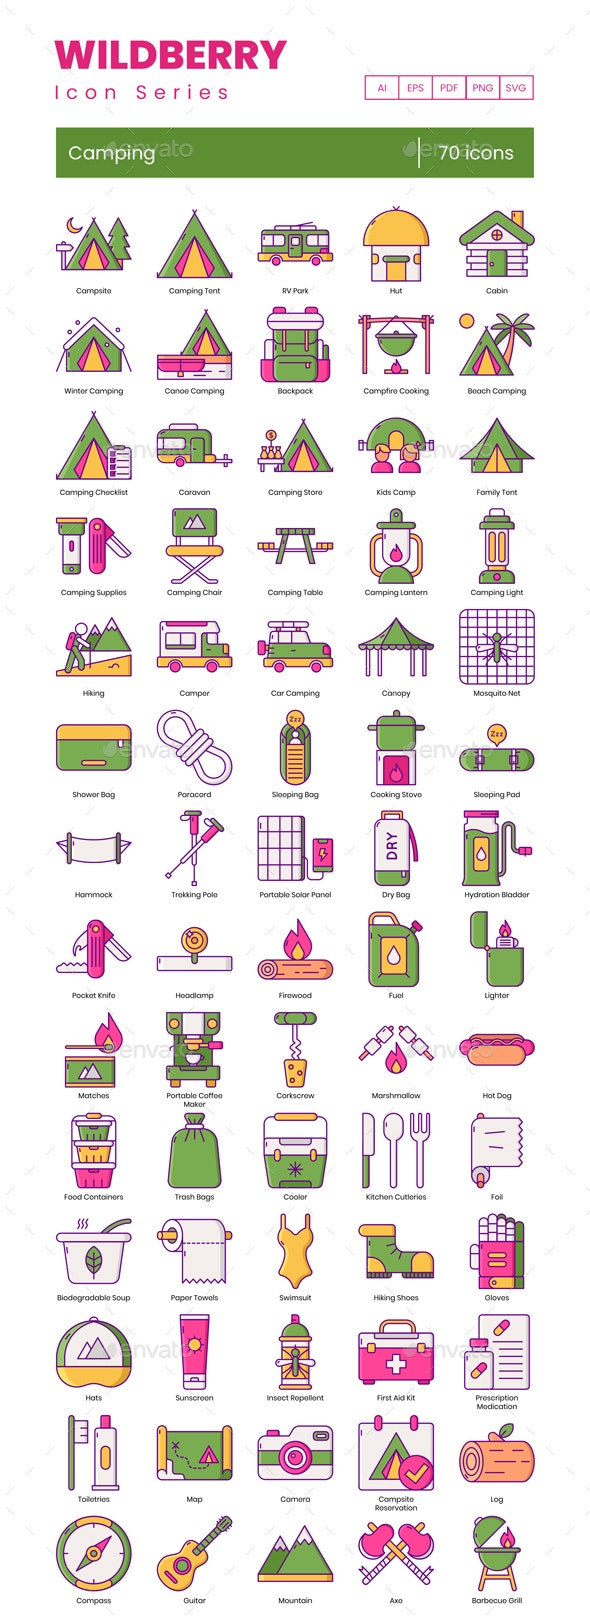 Camping Icons - Wildberry Series - Miscellaneous Icons